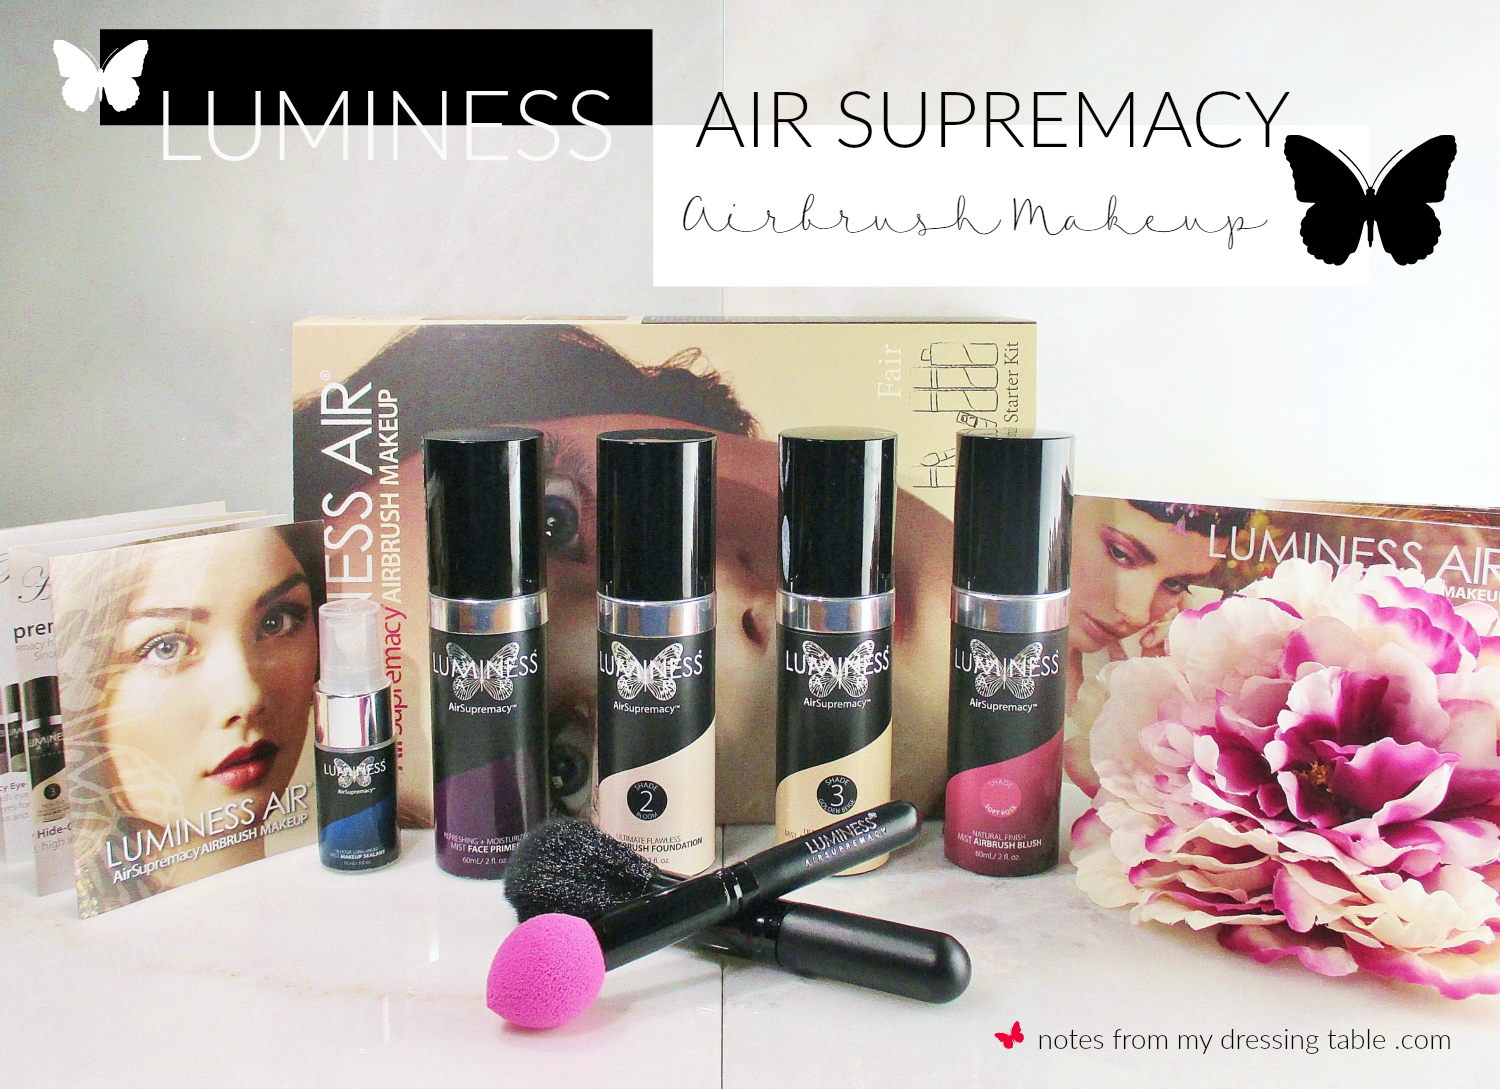 Luminess Air Air Supremacy Airbrush Makeup Airbrush